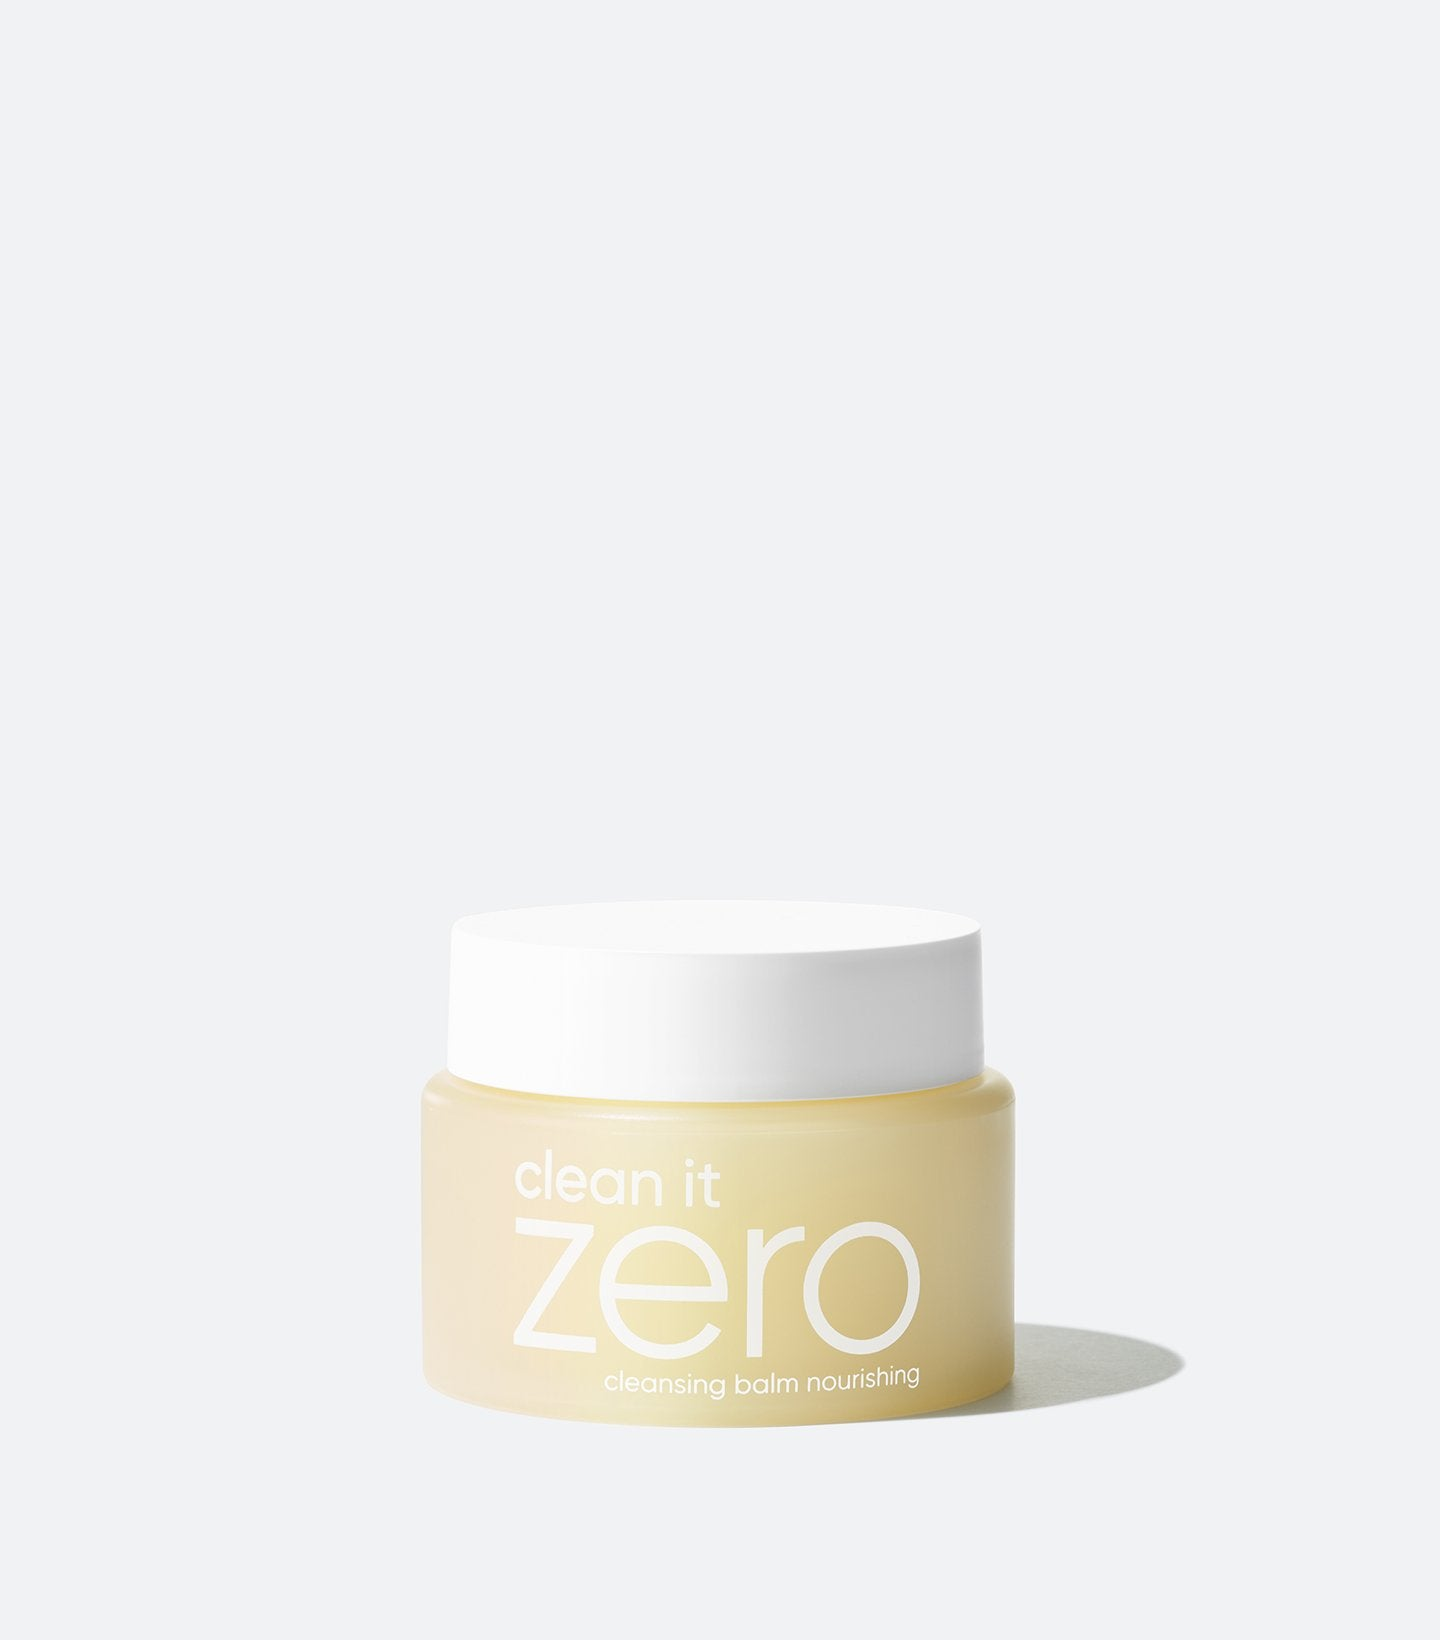 Clean It Zero Cleansing Balm, Nourishing